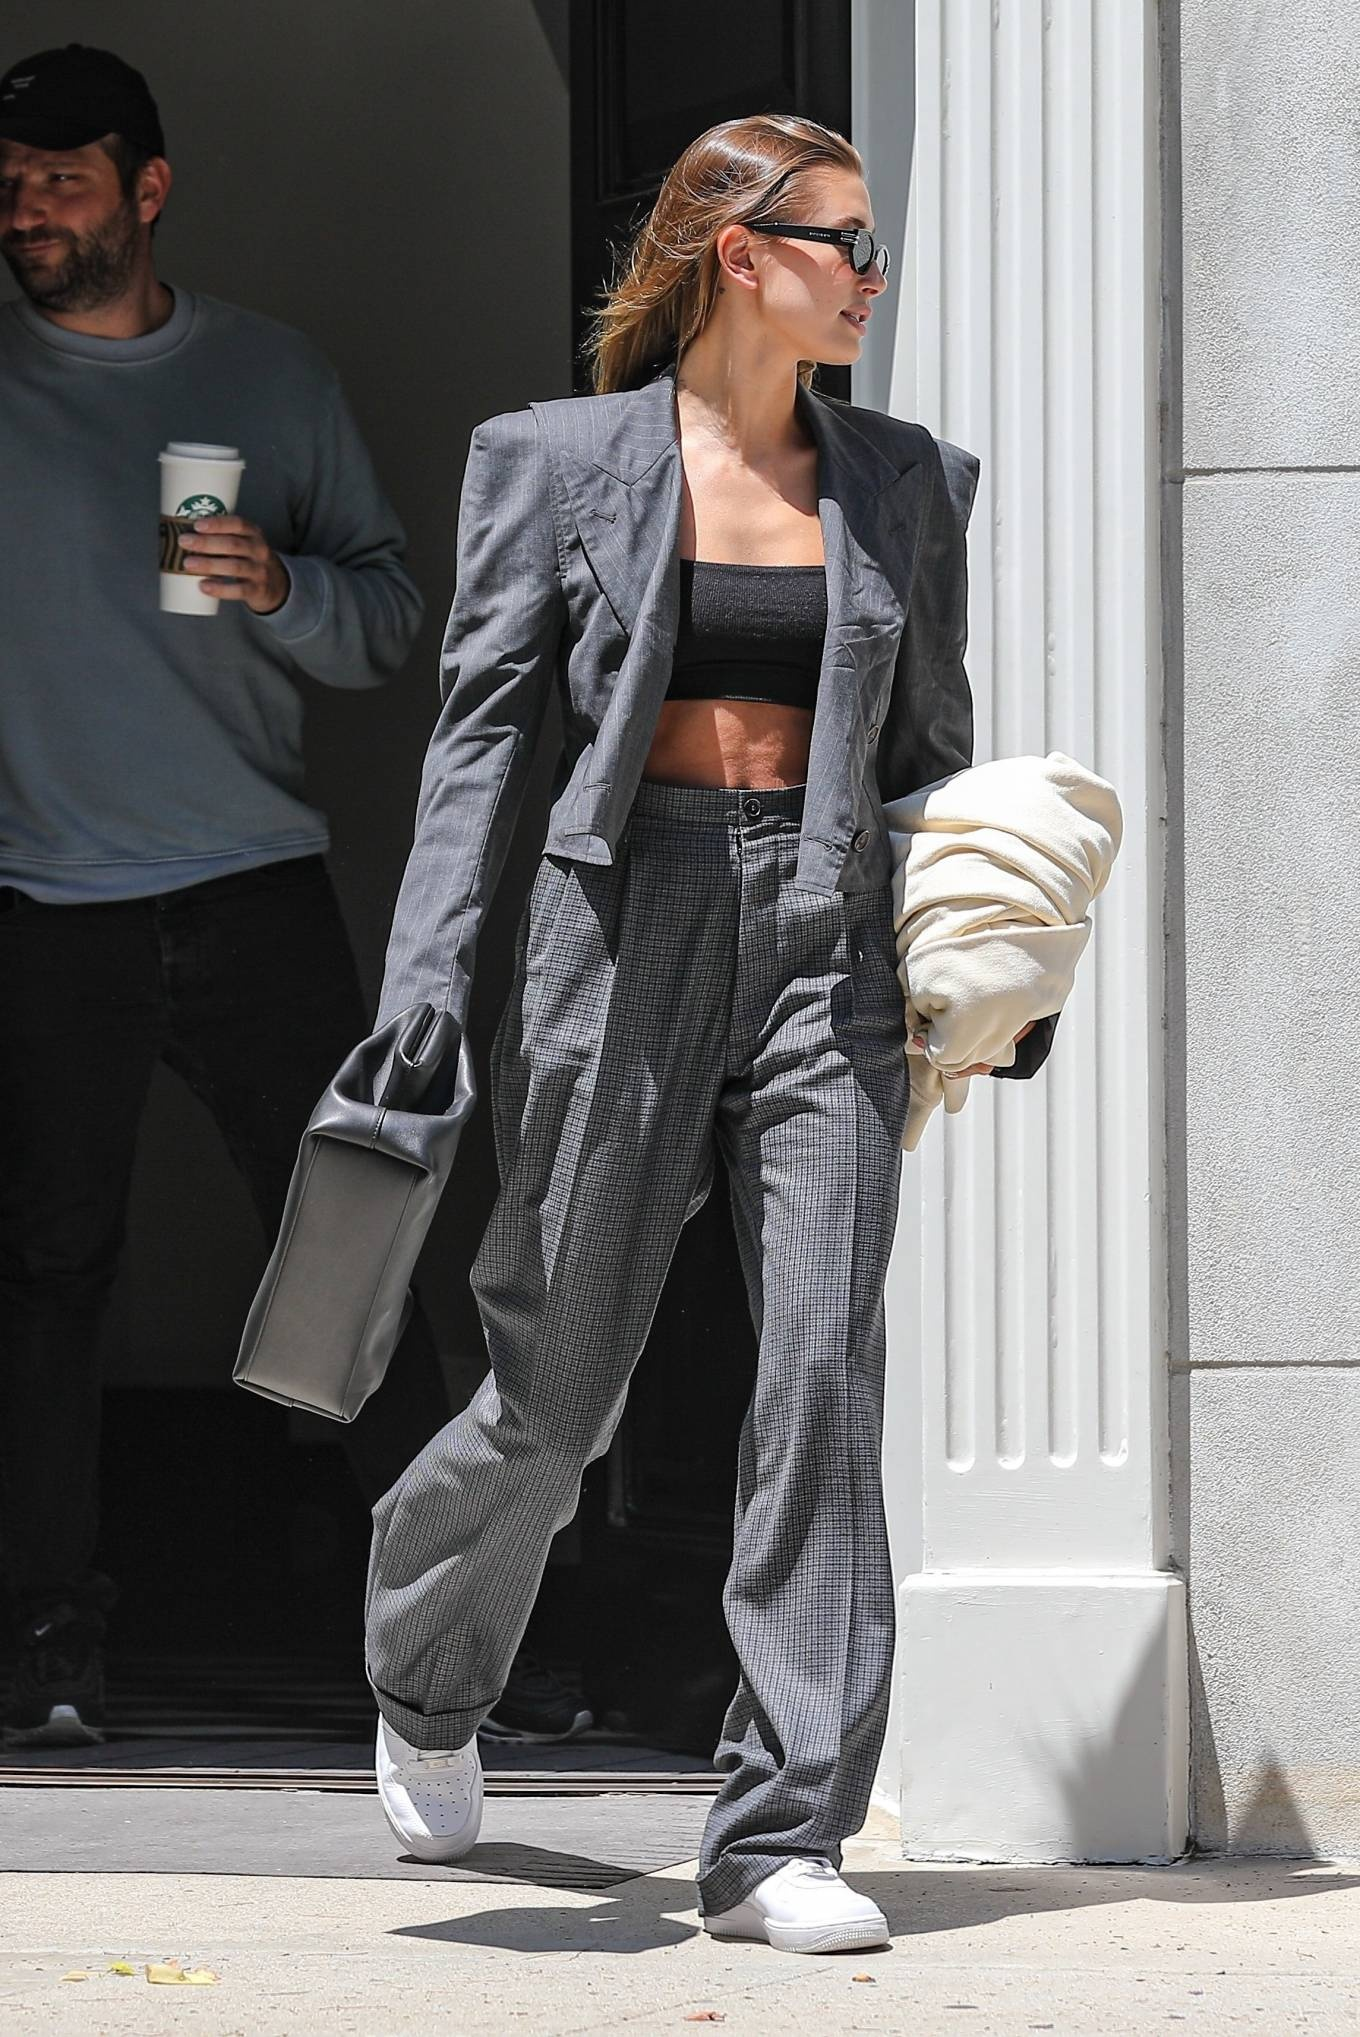 Hailey Baldwin wearing pleated grey woolen trousers with high waist with side pockets